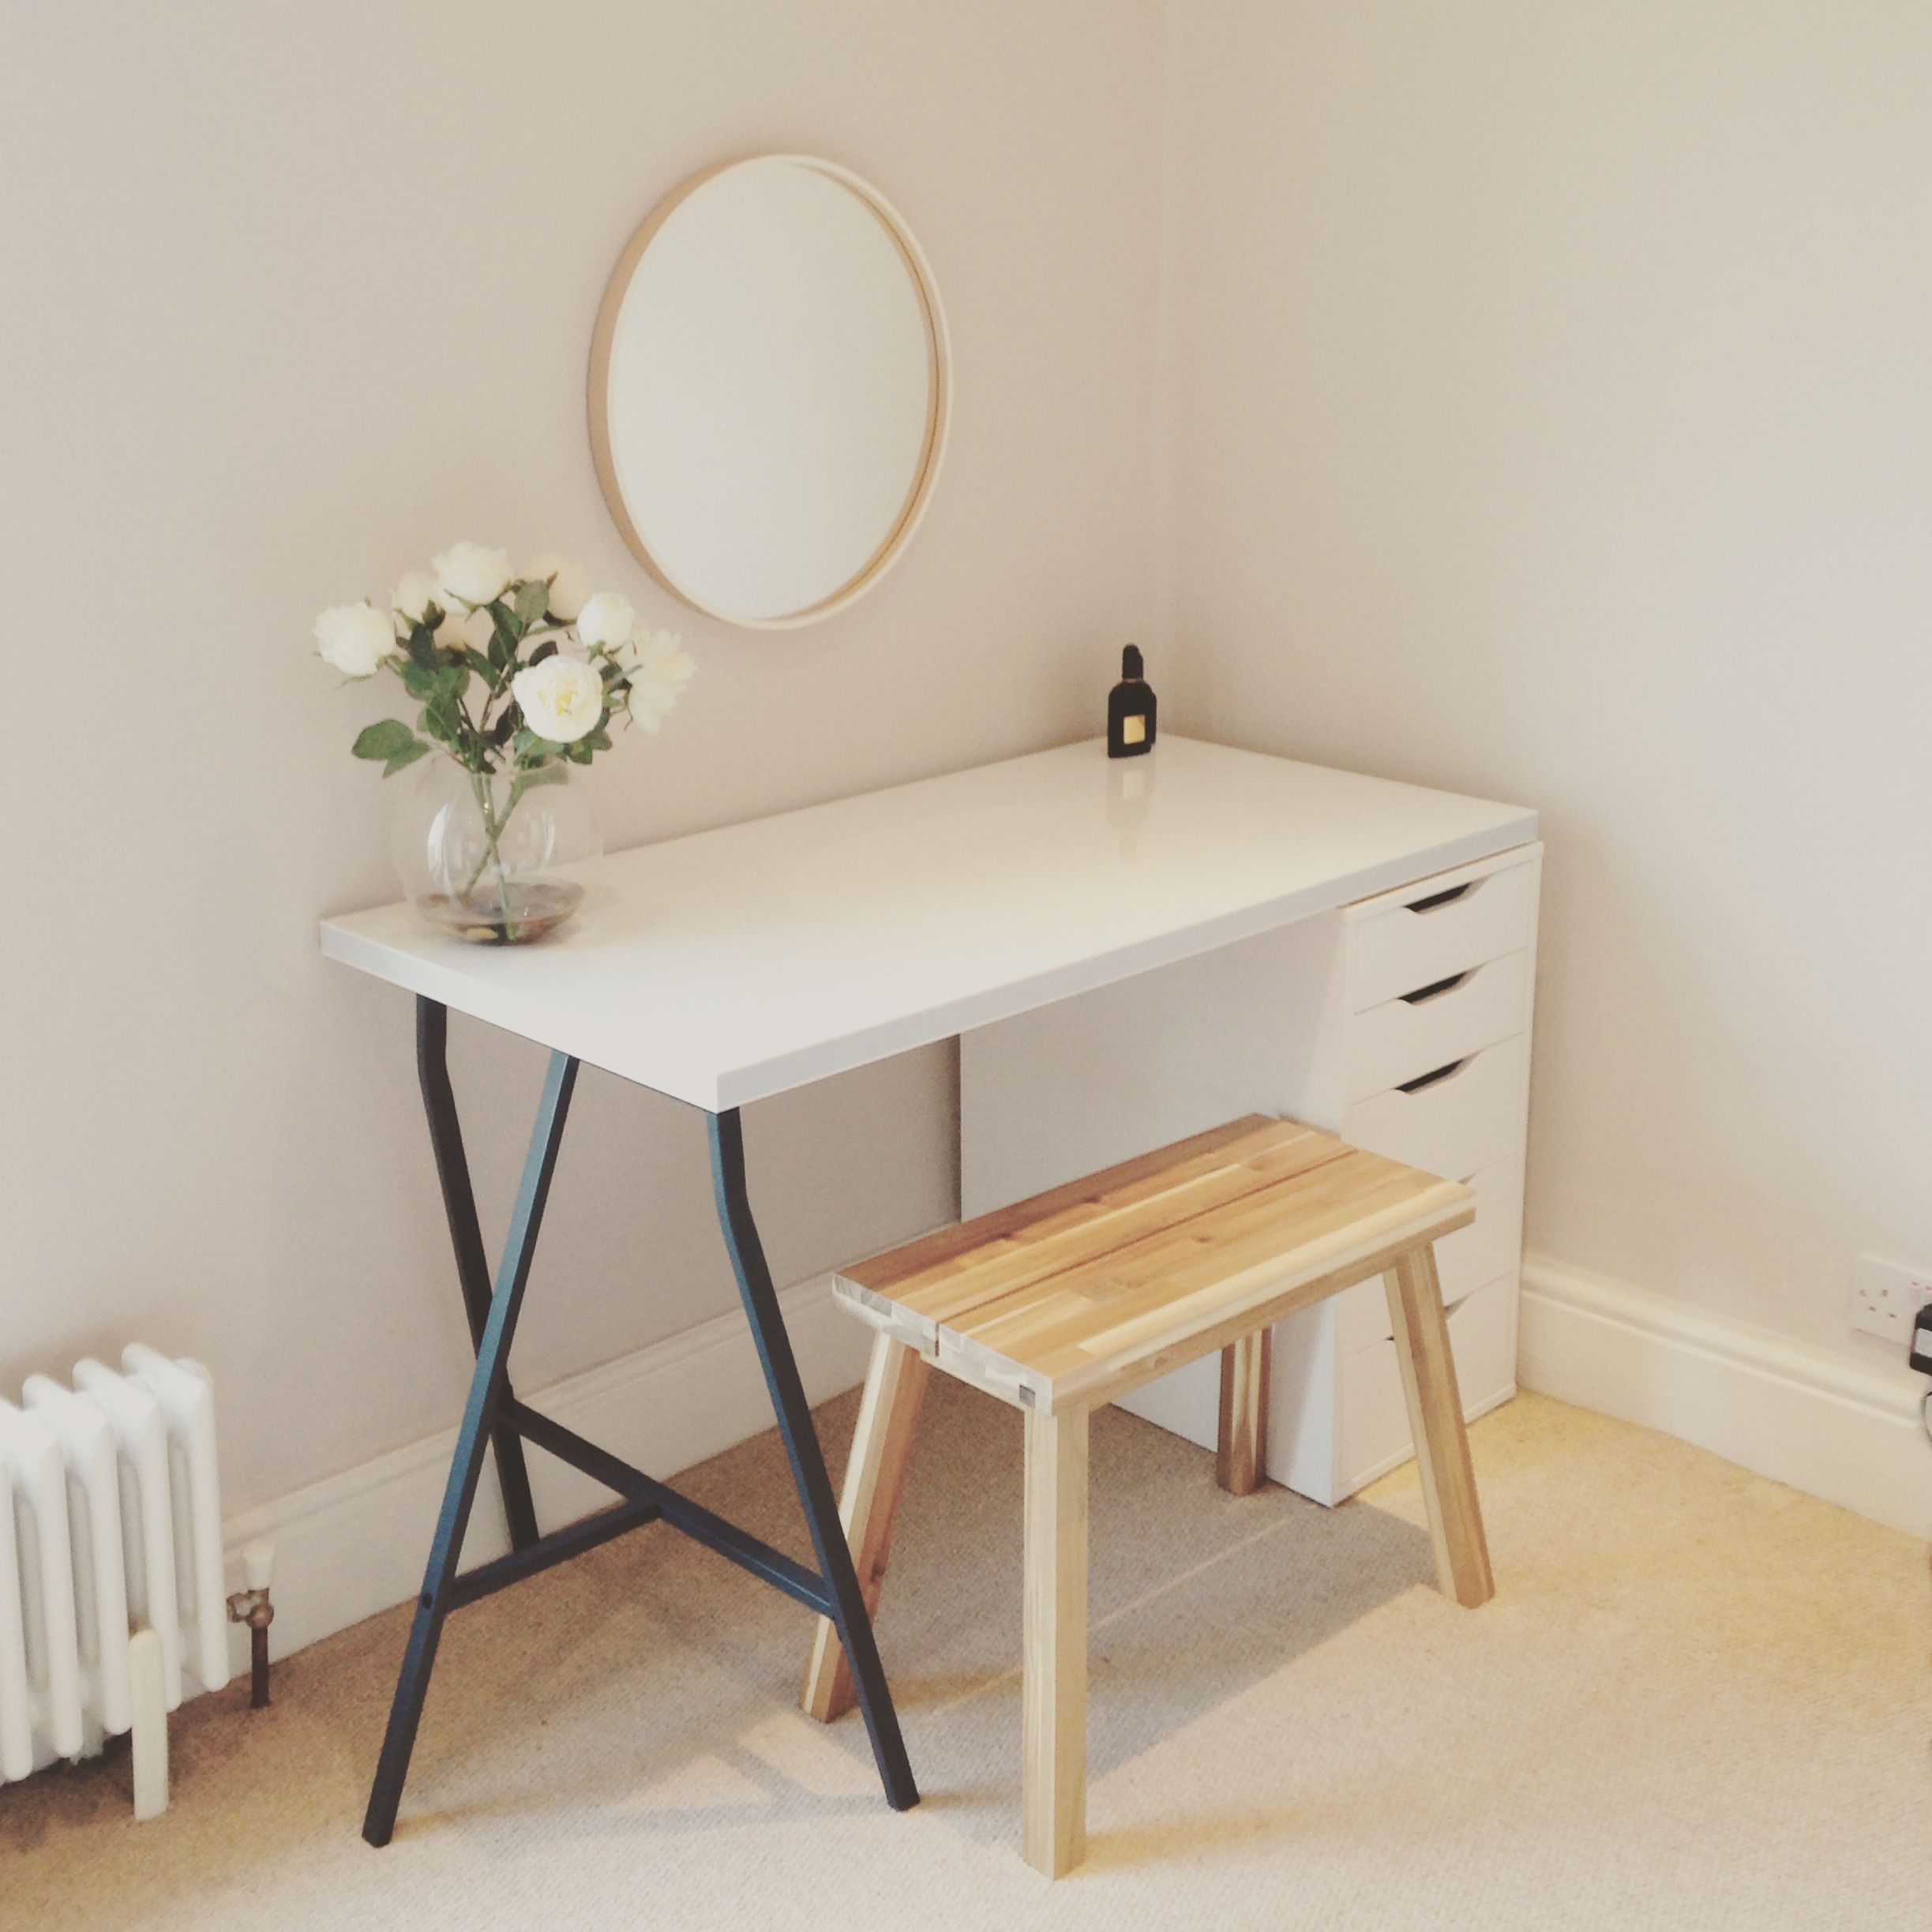 Ikea Dressing Table Scandinavian Dressing Table Ikea Home Ideas Collection Vanity Desk